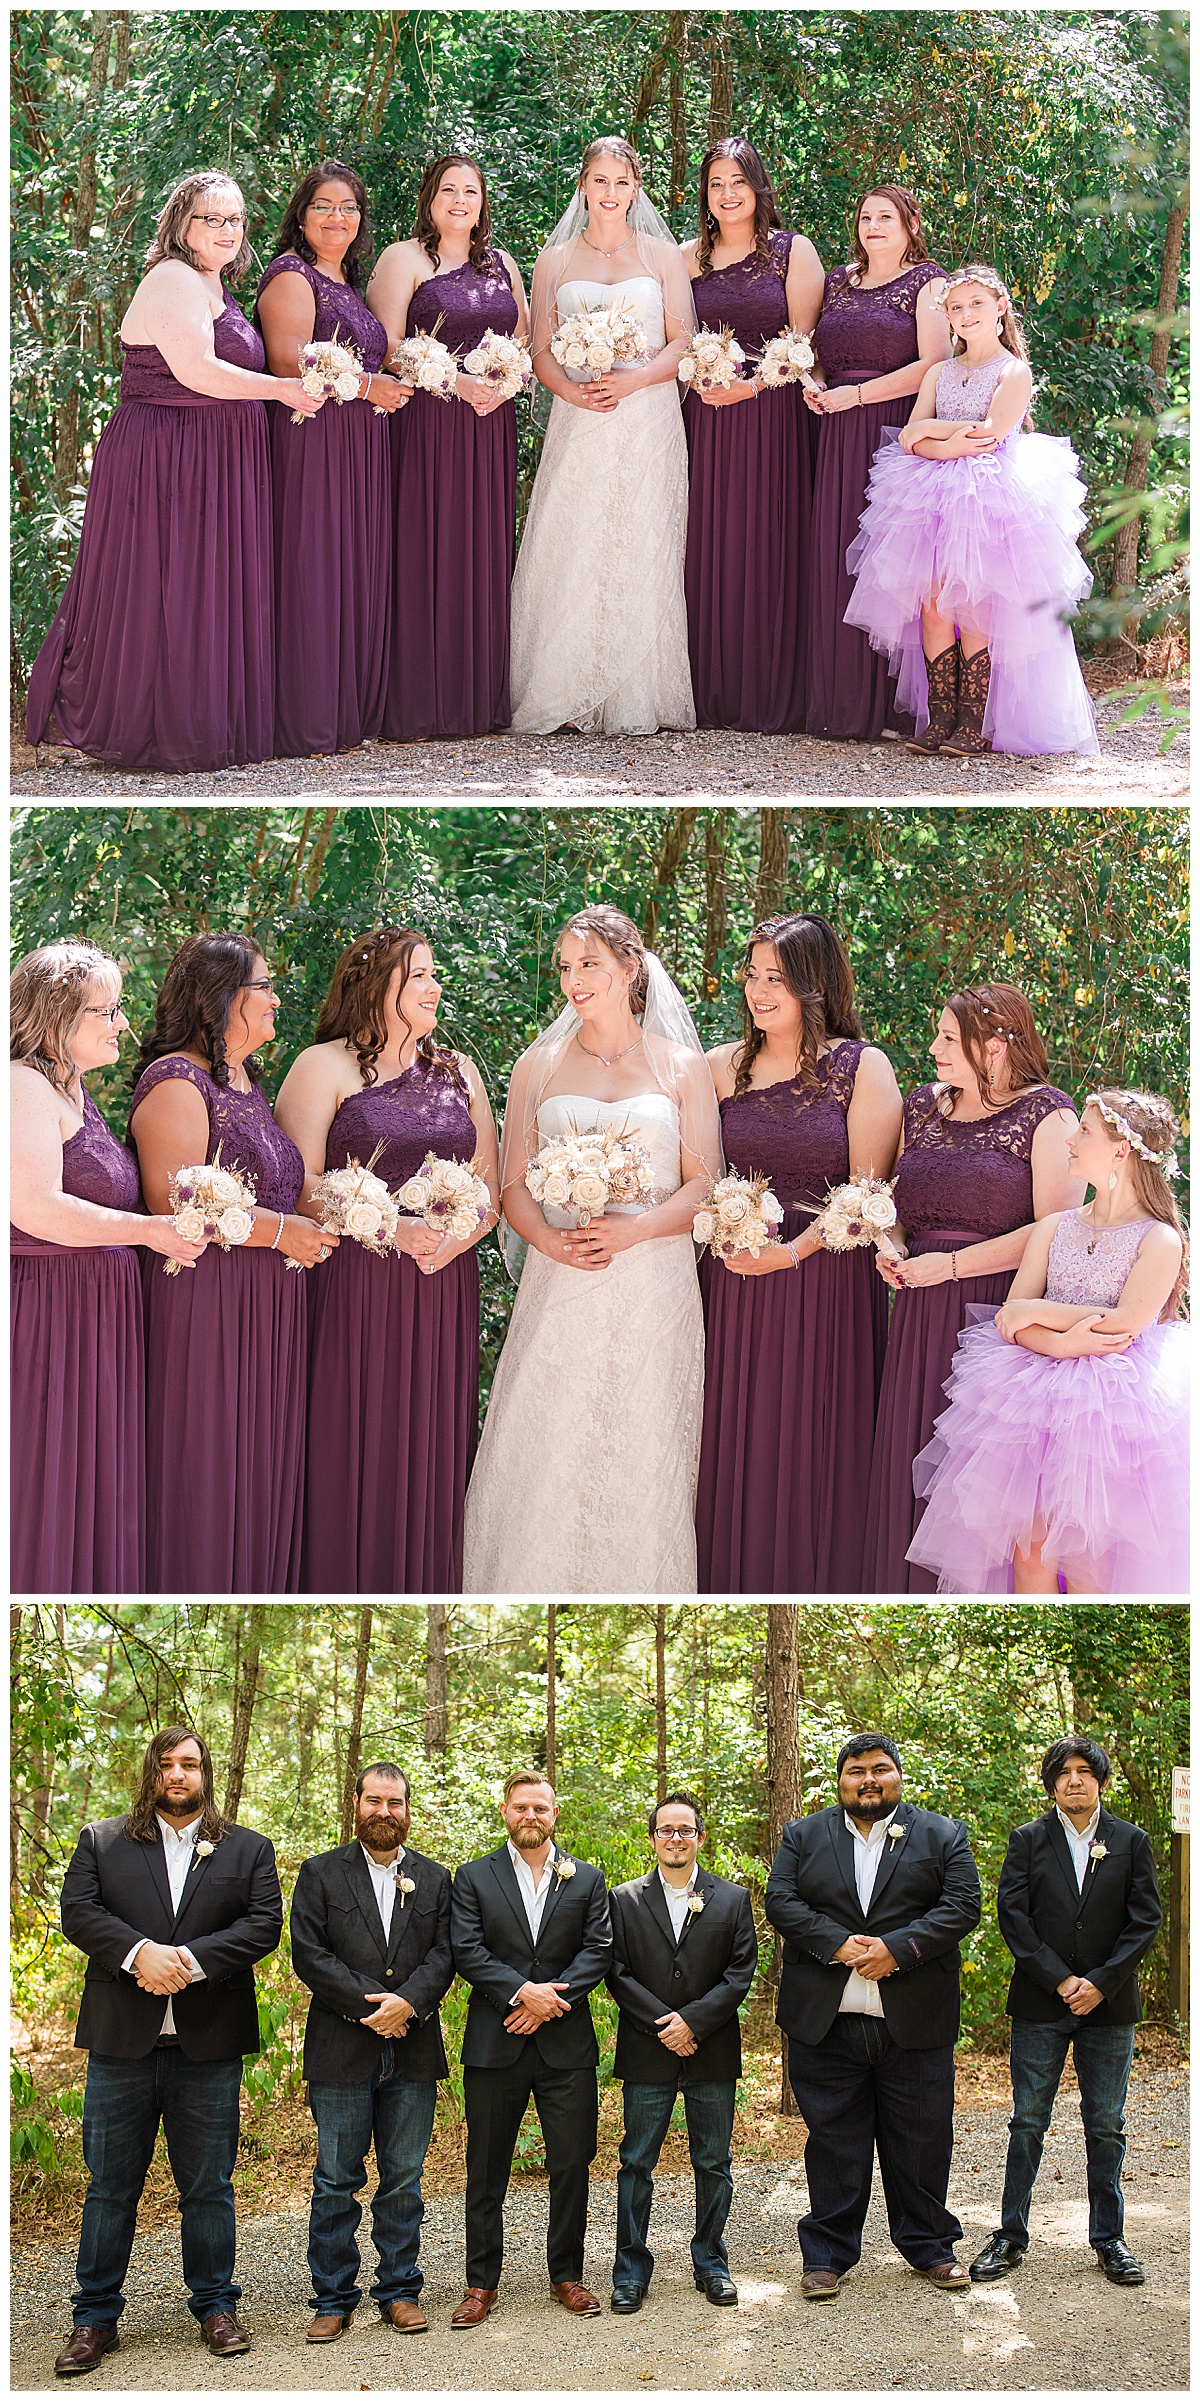 Texas-Magnolia-Bells-Rustic-Wedding-Carly-Barton-Photography_0061.jpg